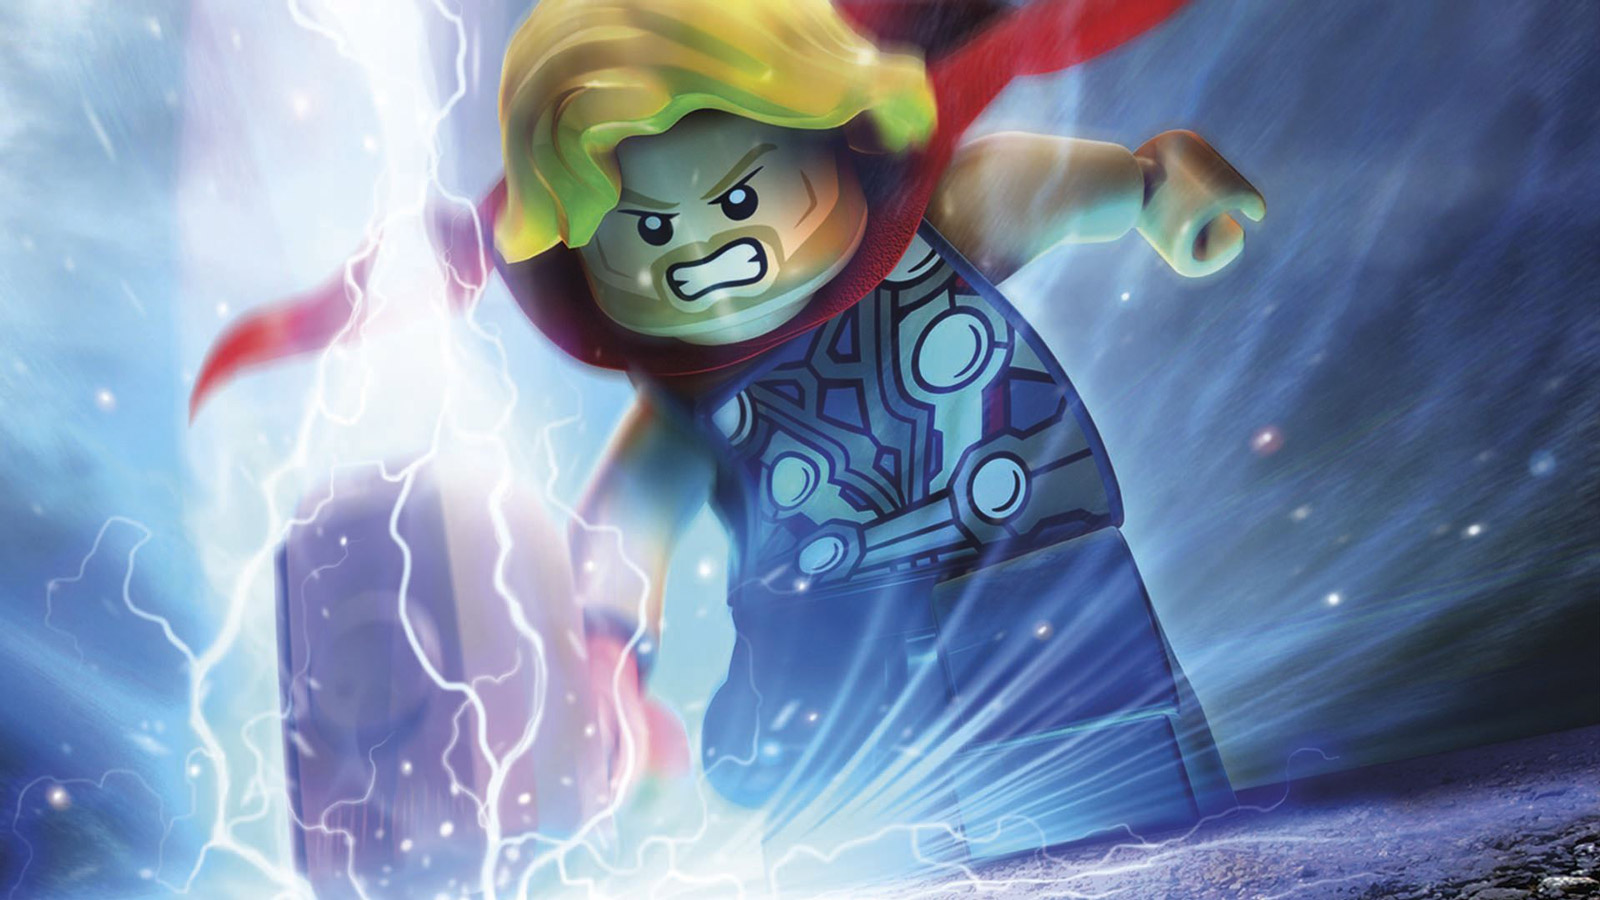 Free Lego Marvel Super Heroes Wallpaper in 1600x900